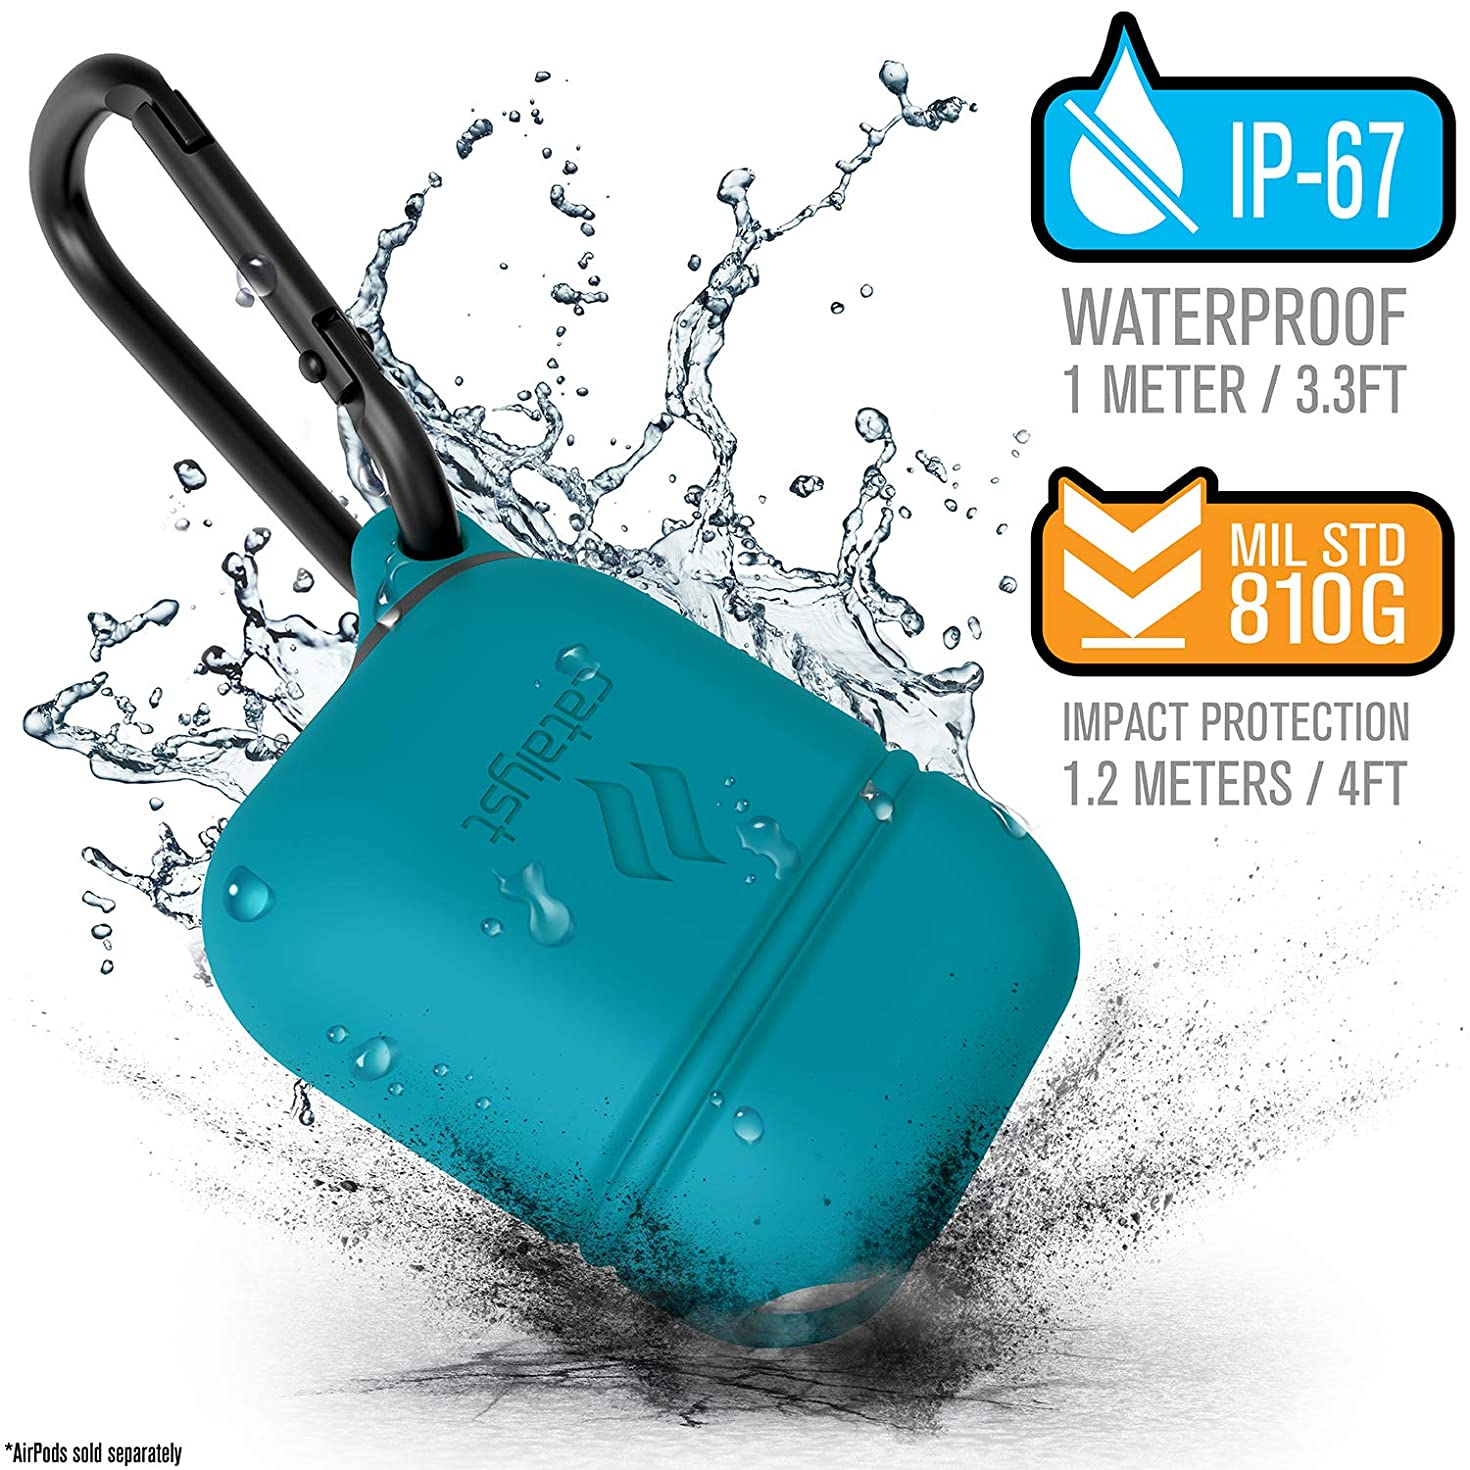 Wireless Charging Case for Airpods 2 Cover by Catalyst, Compatible with Airpods 1, Shockproof Protective Cover Soft Skin, Carabiner, Silicone, Compatible Wireless Charging - Apple Accessories -Teal